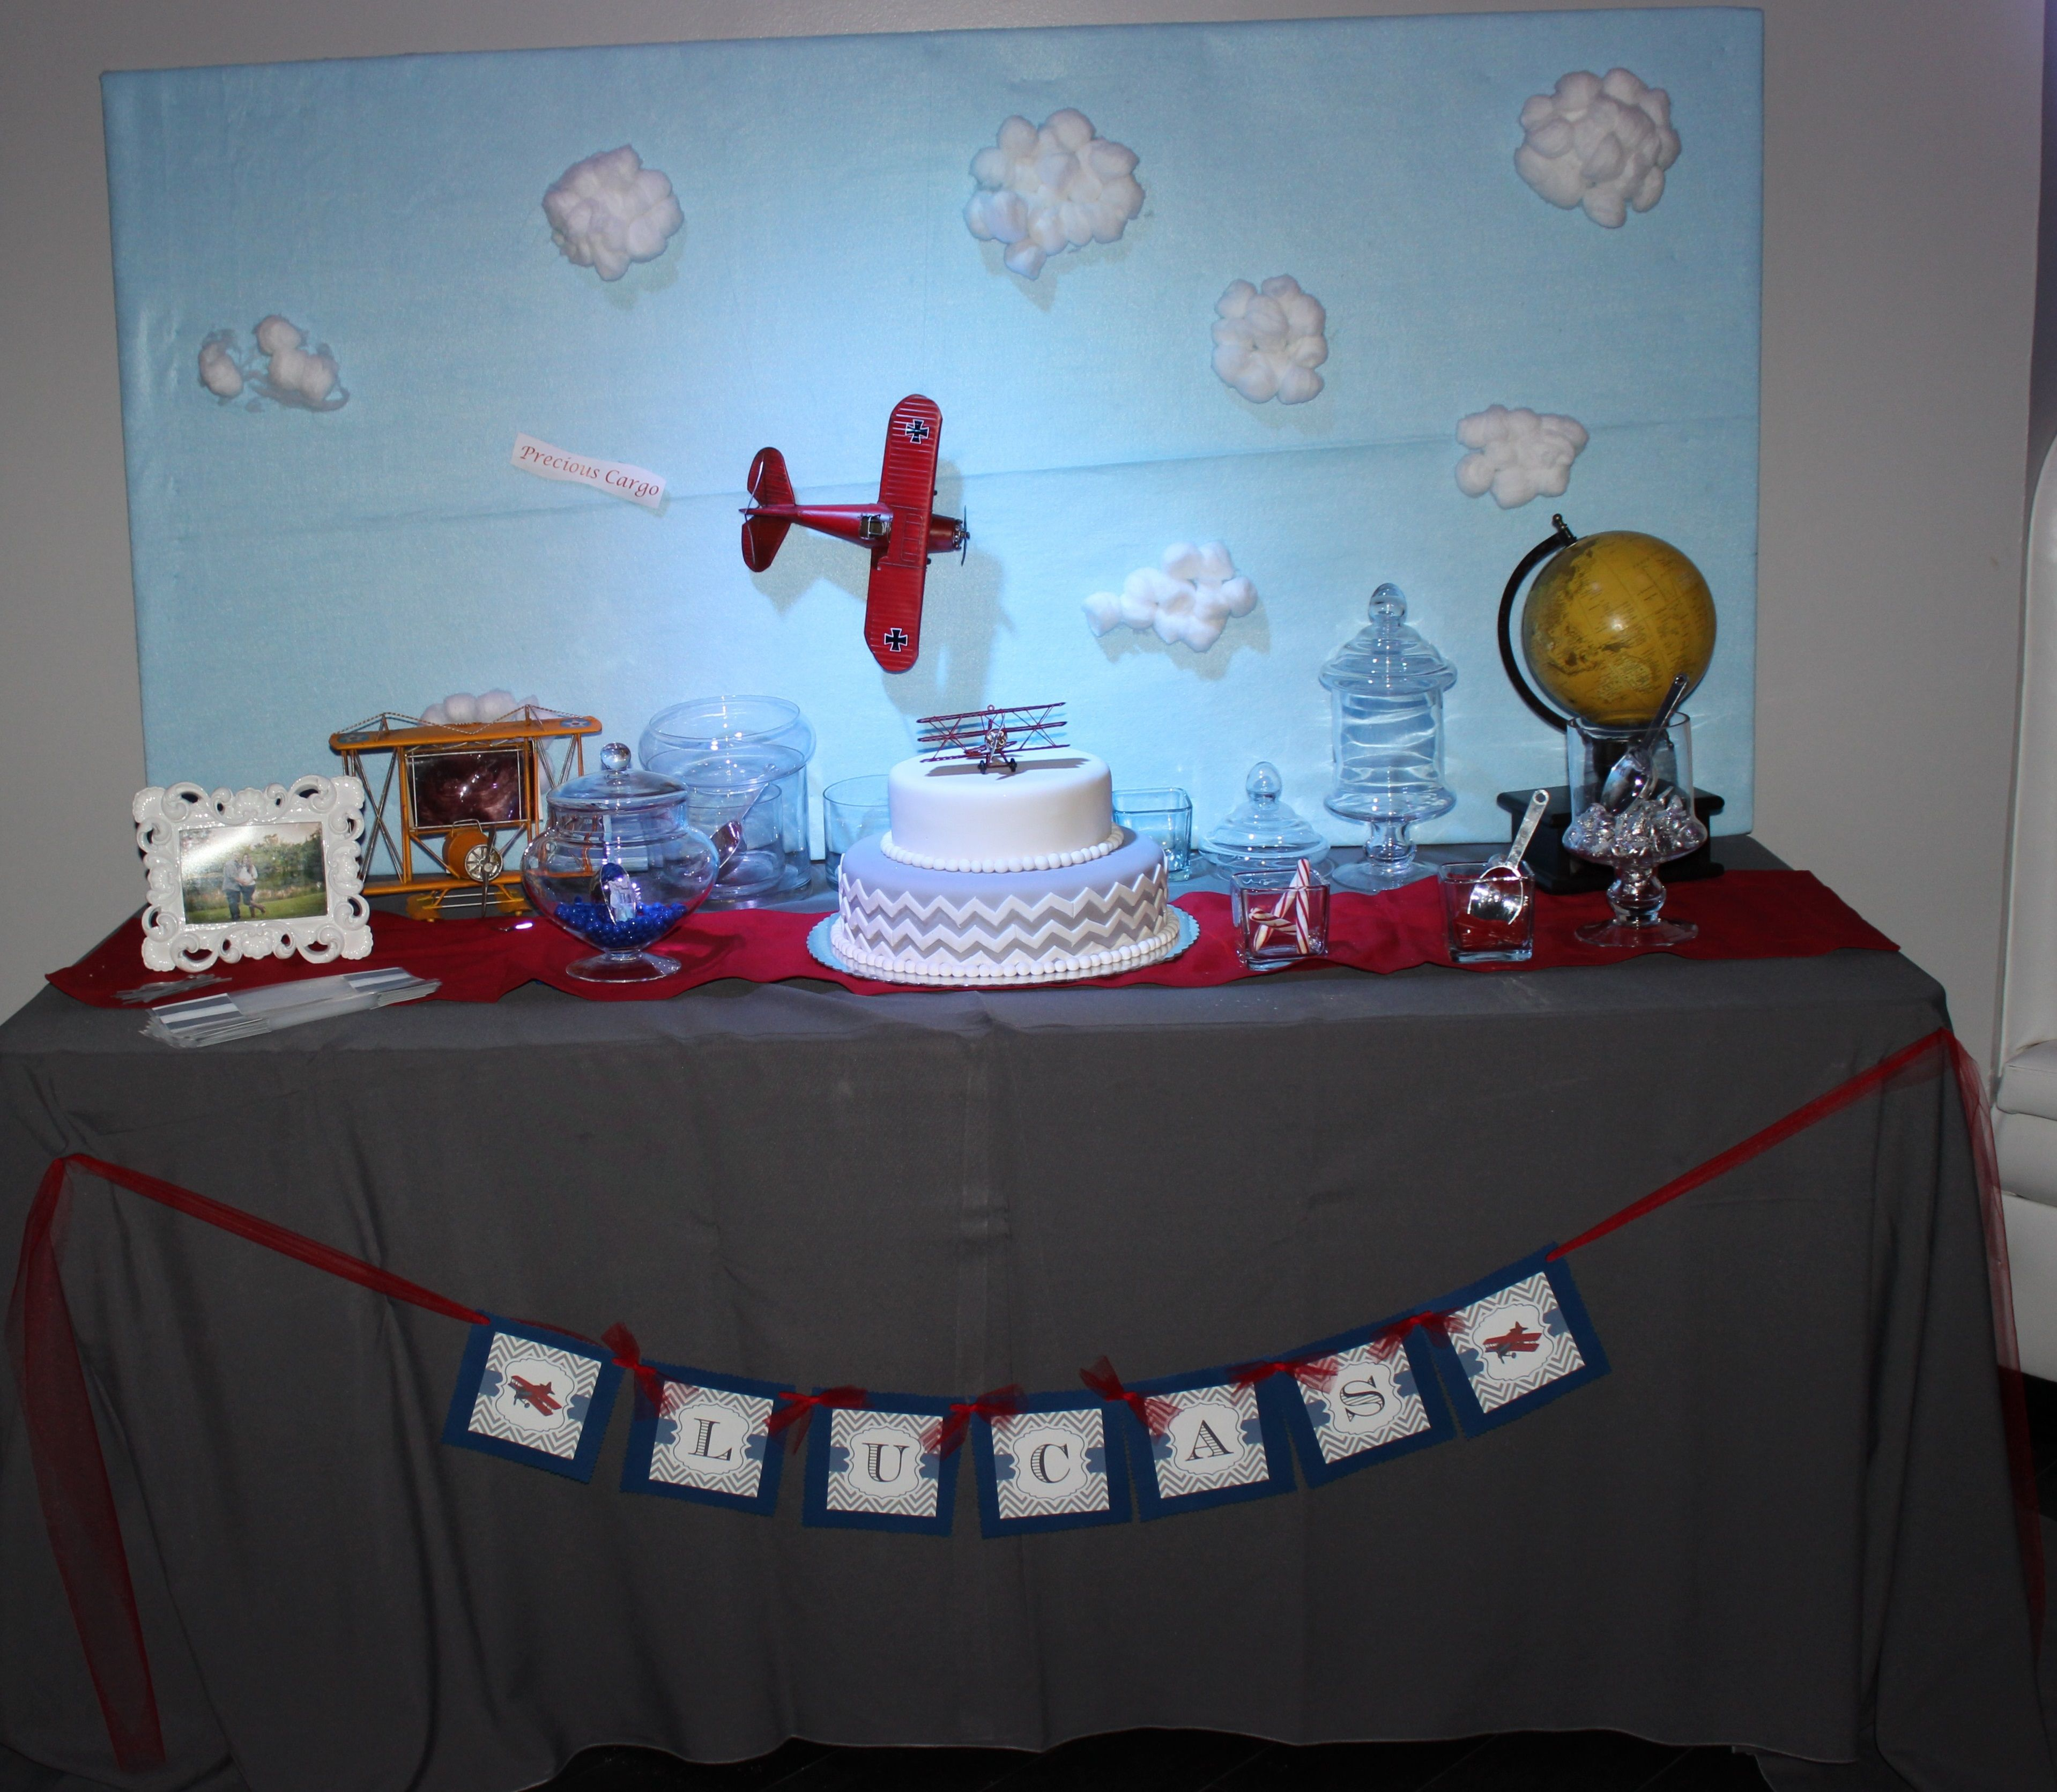 Vintage Airplane Baby Shower sweets table